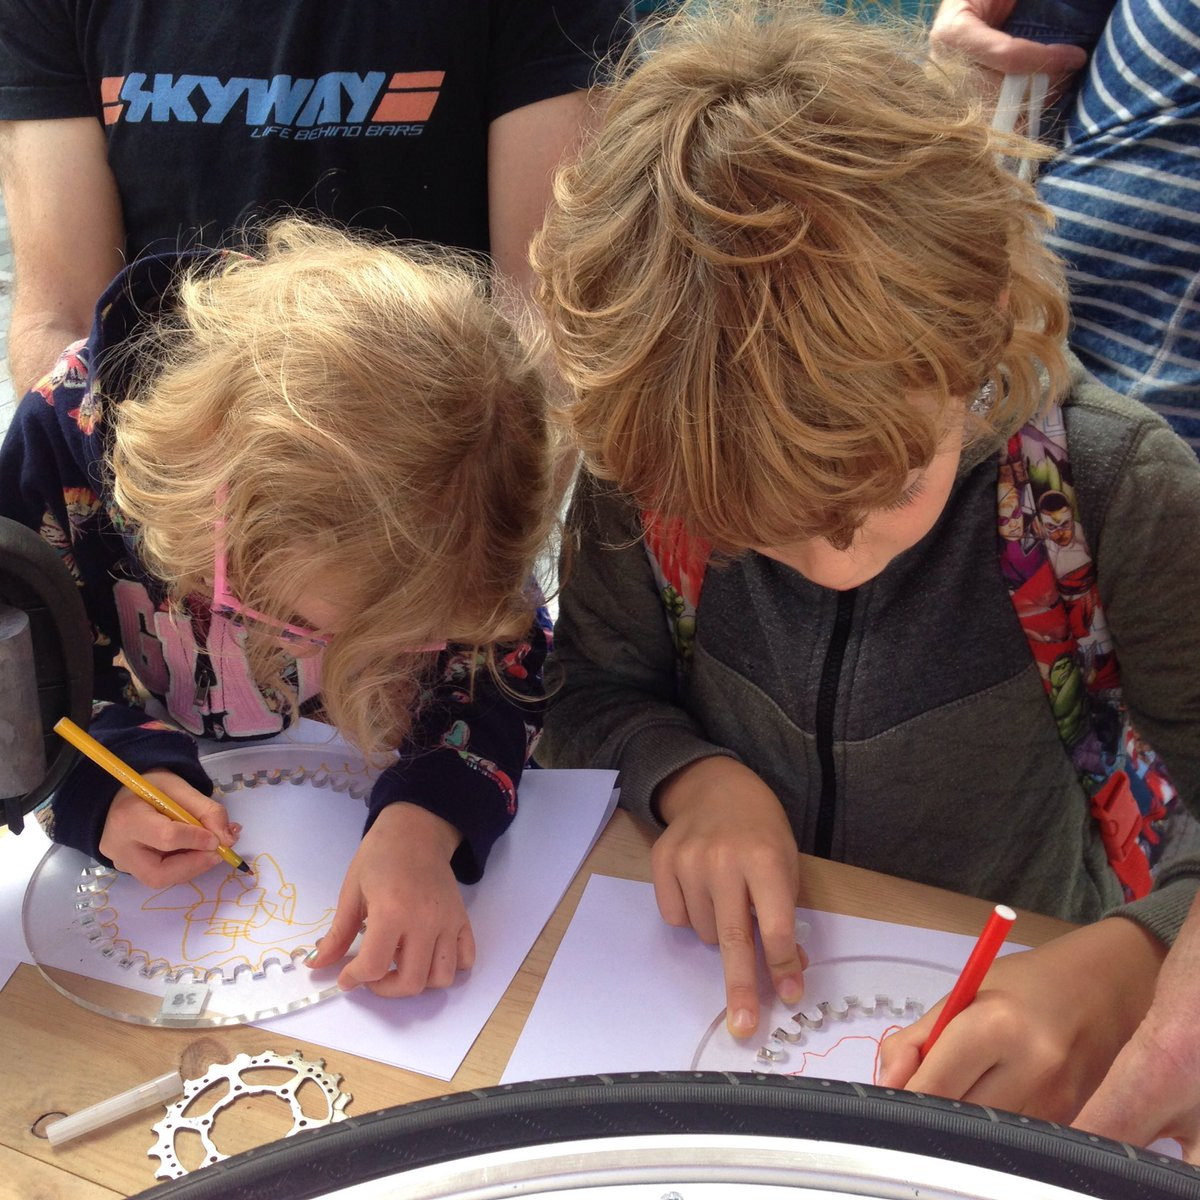 Doodling fun with my Bicycle Drawing Machines for @BritSciAssoc @BritishSciFest #BSF17 on Saturday&#39;s &#39;Sci Street&#39; #GiantDrawingMachines<br>http://pic.twitter.com/RTD9GjEizG &ndash; at Theatre Royal